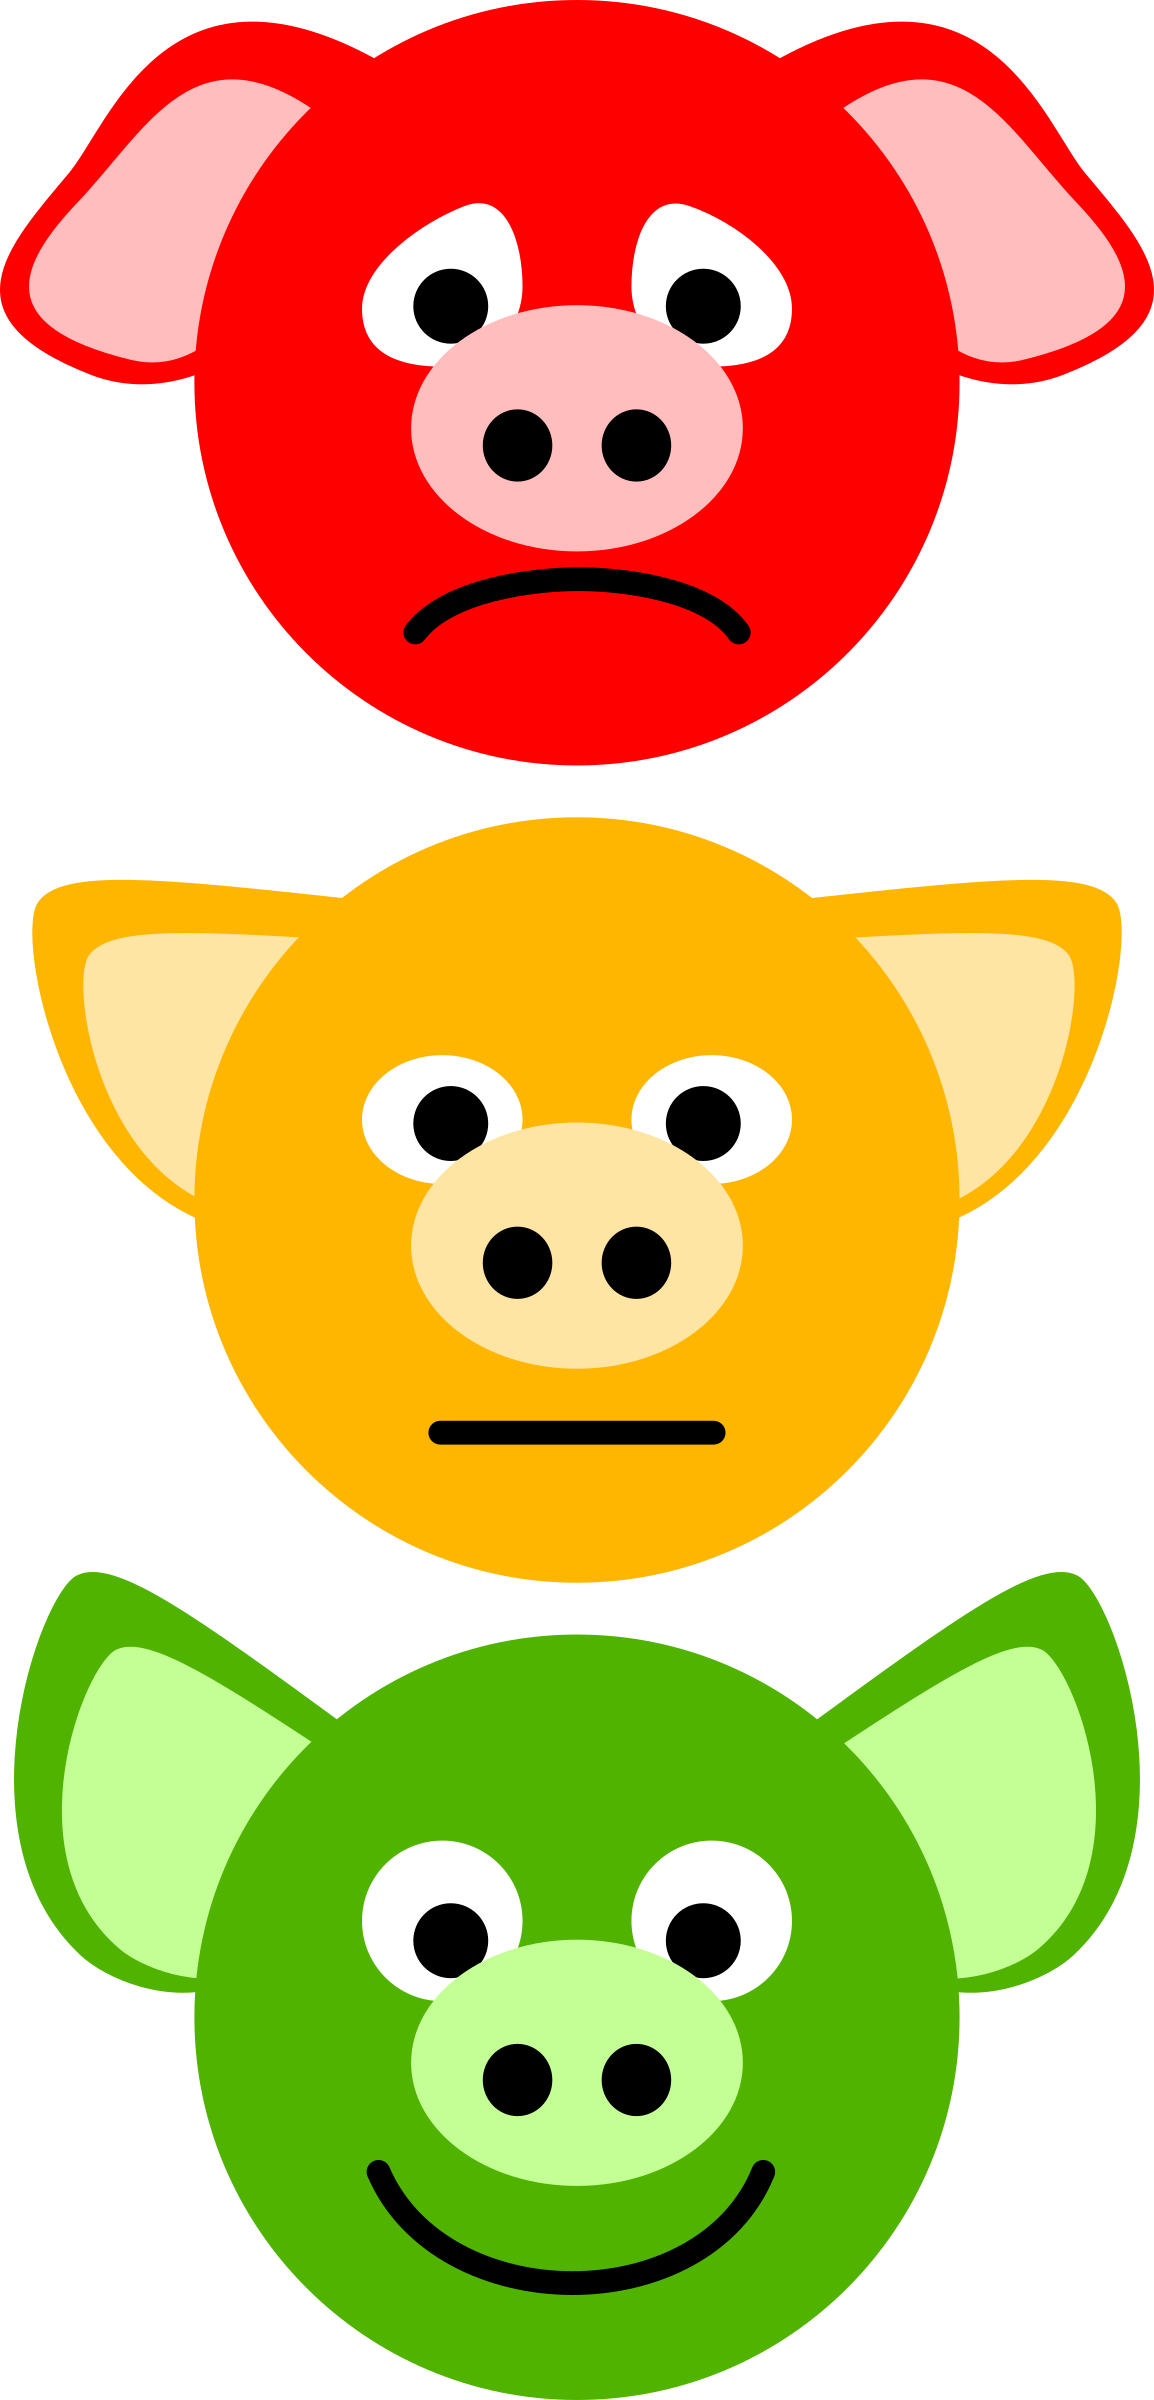 Pig Traffic Lights by Onsemeliot